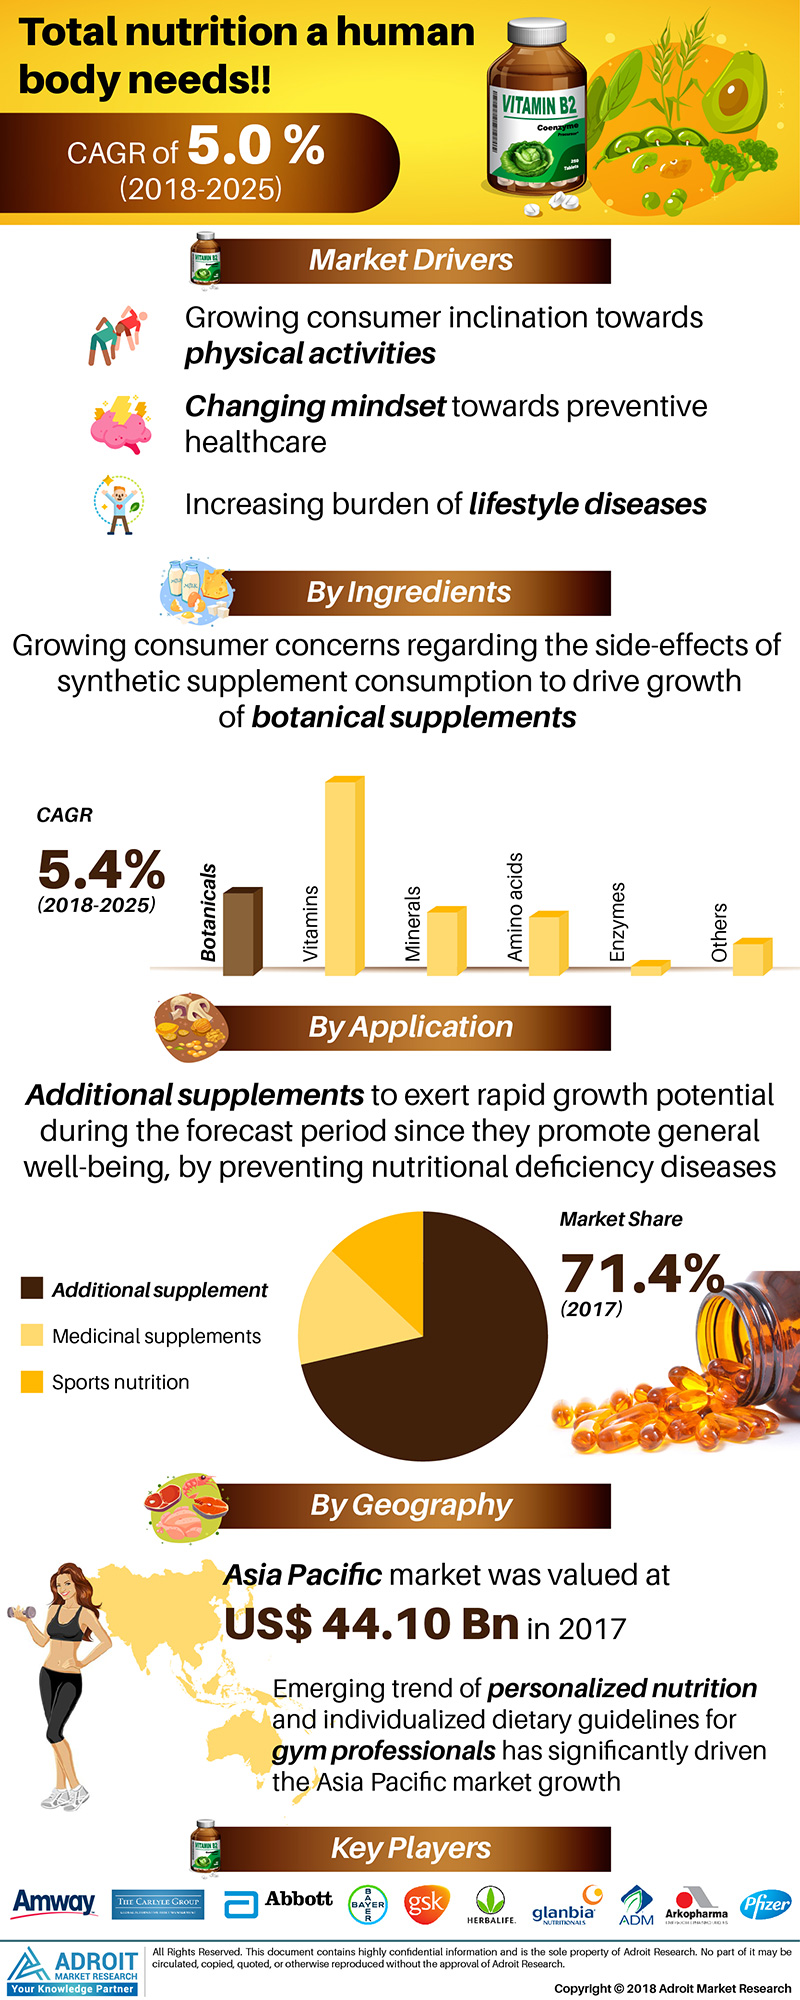 Dietary Supplements Market Overview by Probiotic Ingredients, Healthy Product Design, Consumer Demand, Top Manufacturers, Regional Competitive landscape & Excellent Market Opportunities by 2025 1